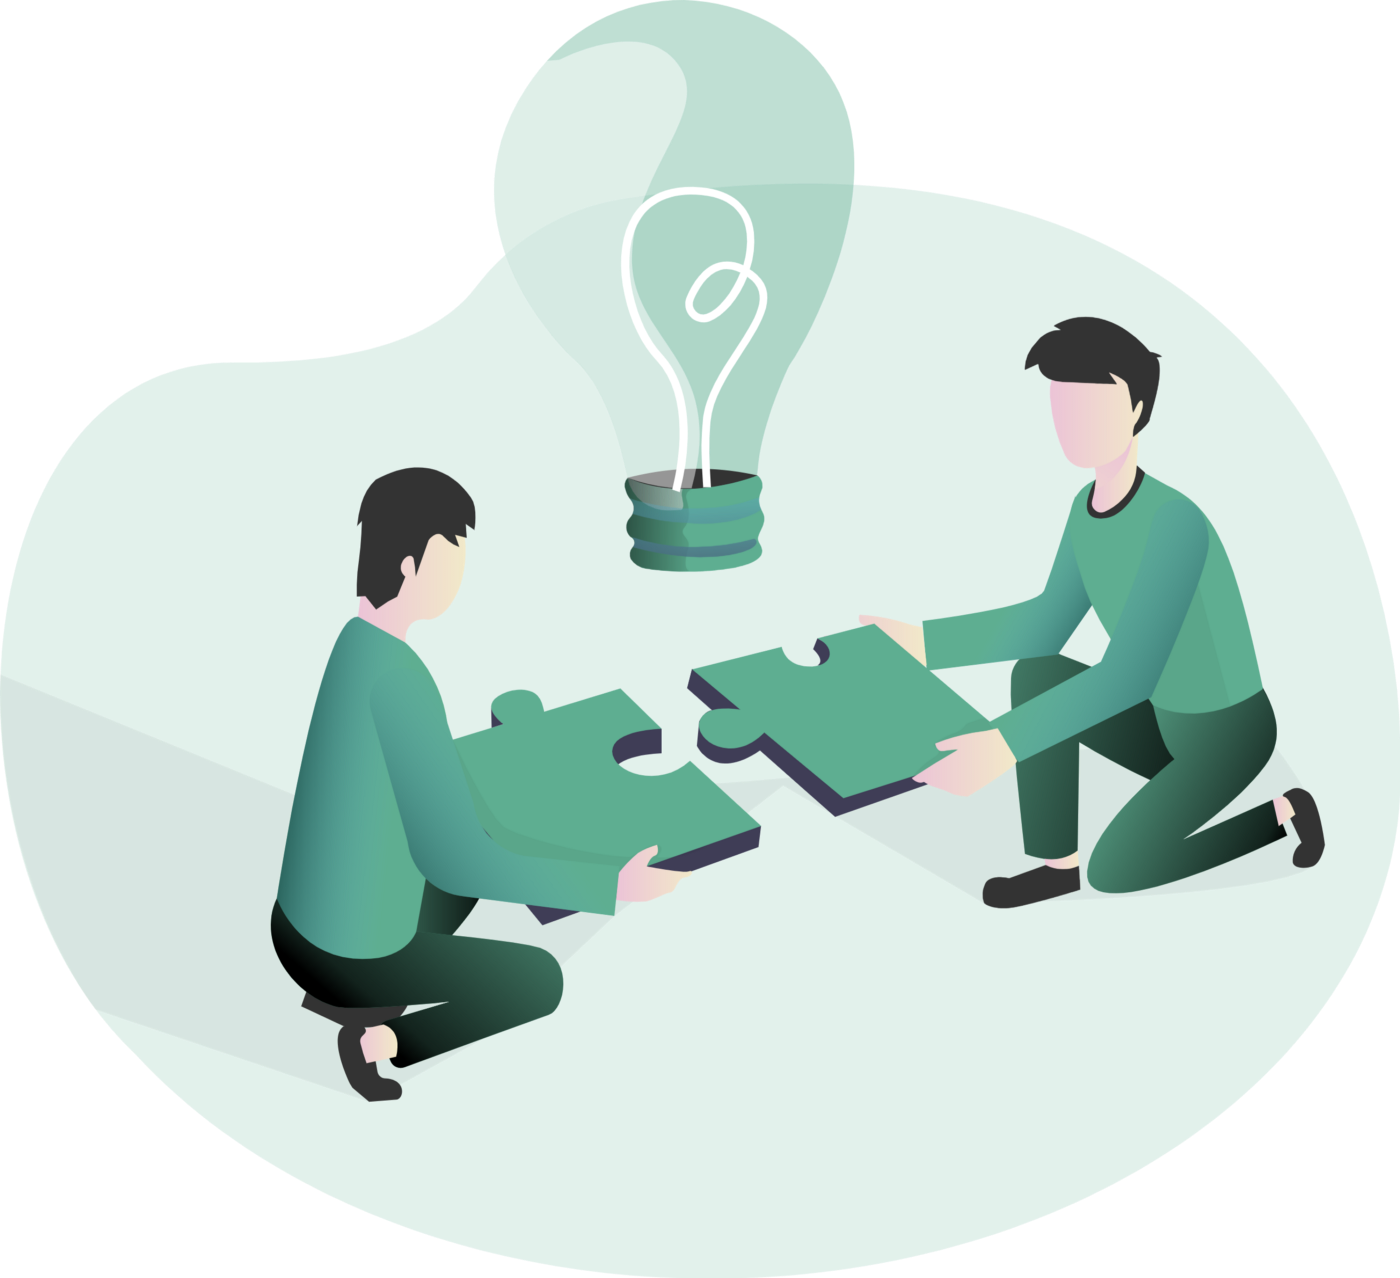 Two individuals holding puzzle pieces with a light bulb in the middle symbolizing problem-solving.